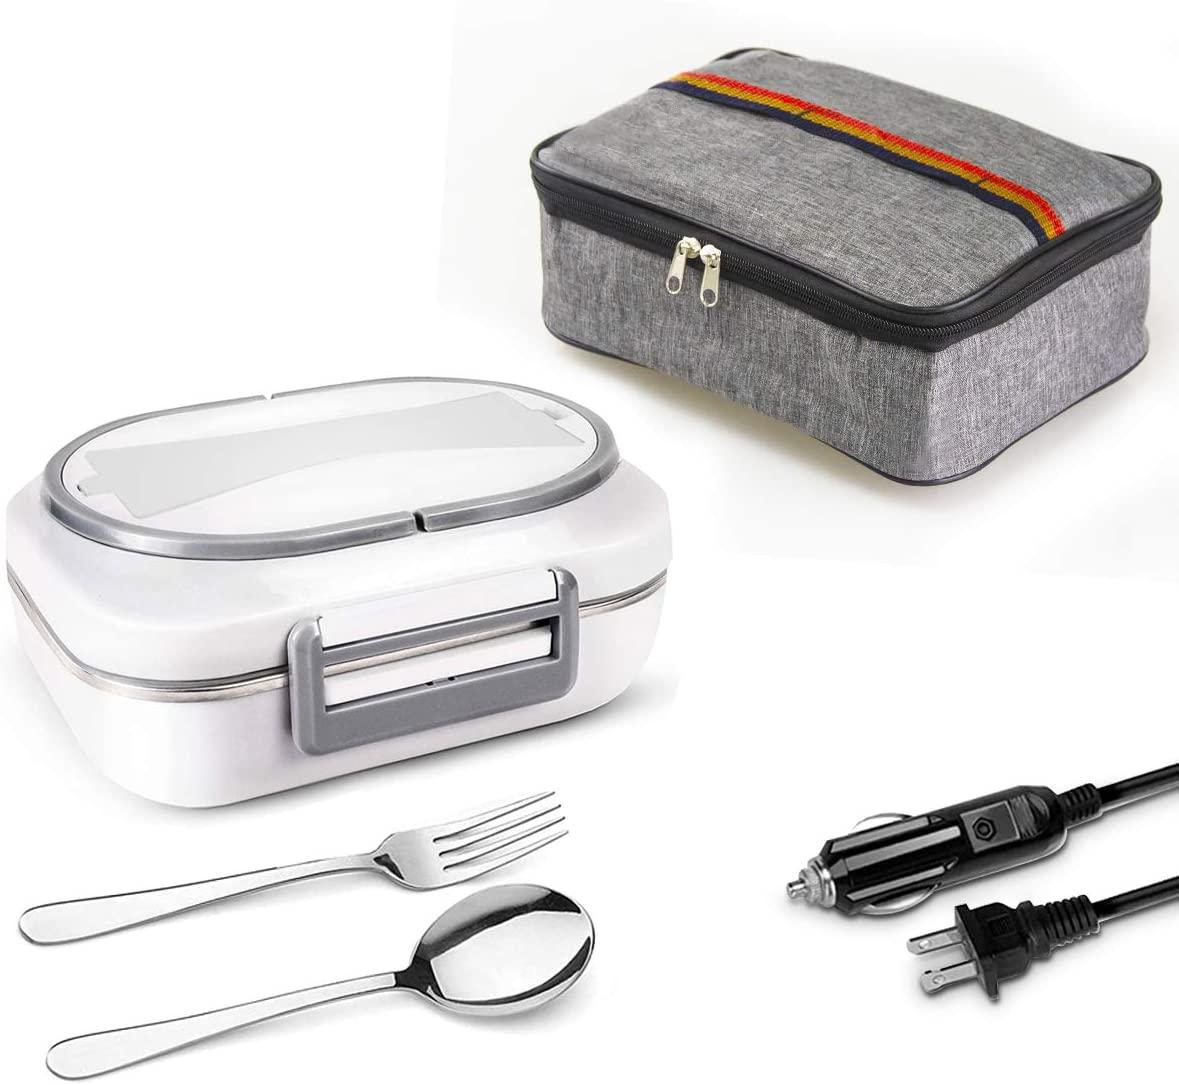 Electric Lunch Box OMaggie Food Heater 2 in 1 Portable 110V/12W Food Warmer for car, Home, 40W, Removable Stainless Steel Lunch Box, 3 Compartments with Fork, Spoon, Carry Bag